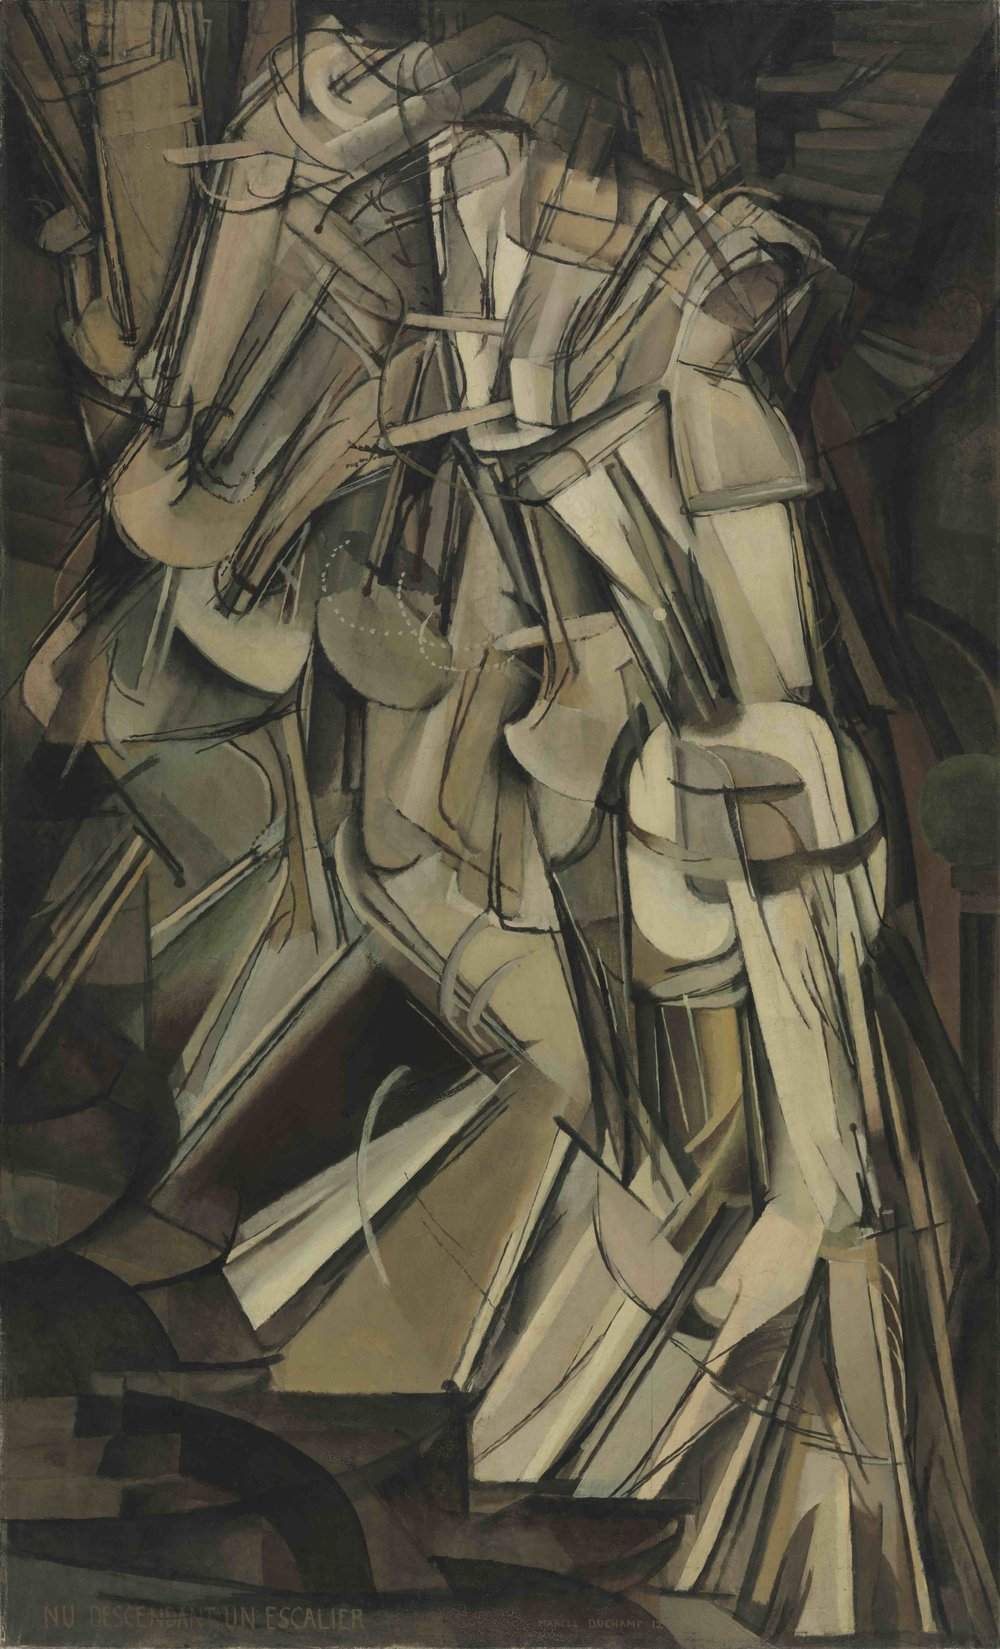 Nude Descending a Staircase , Marcel Duchamp, 1912